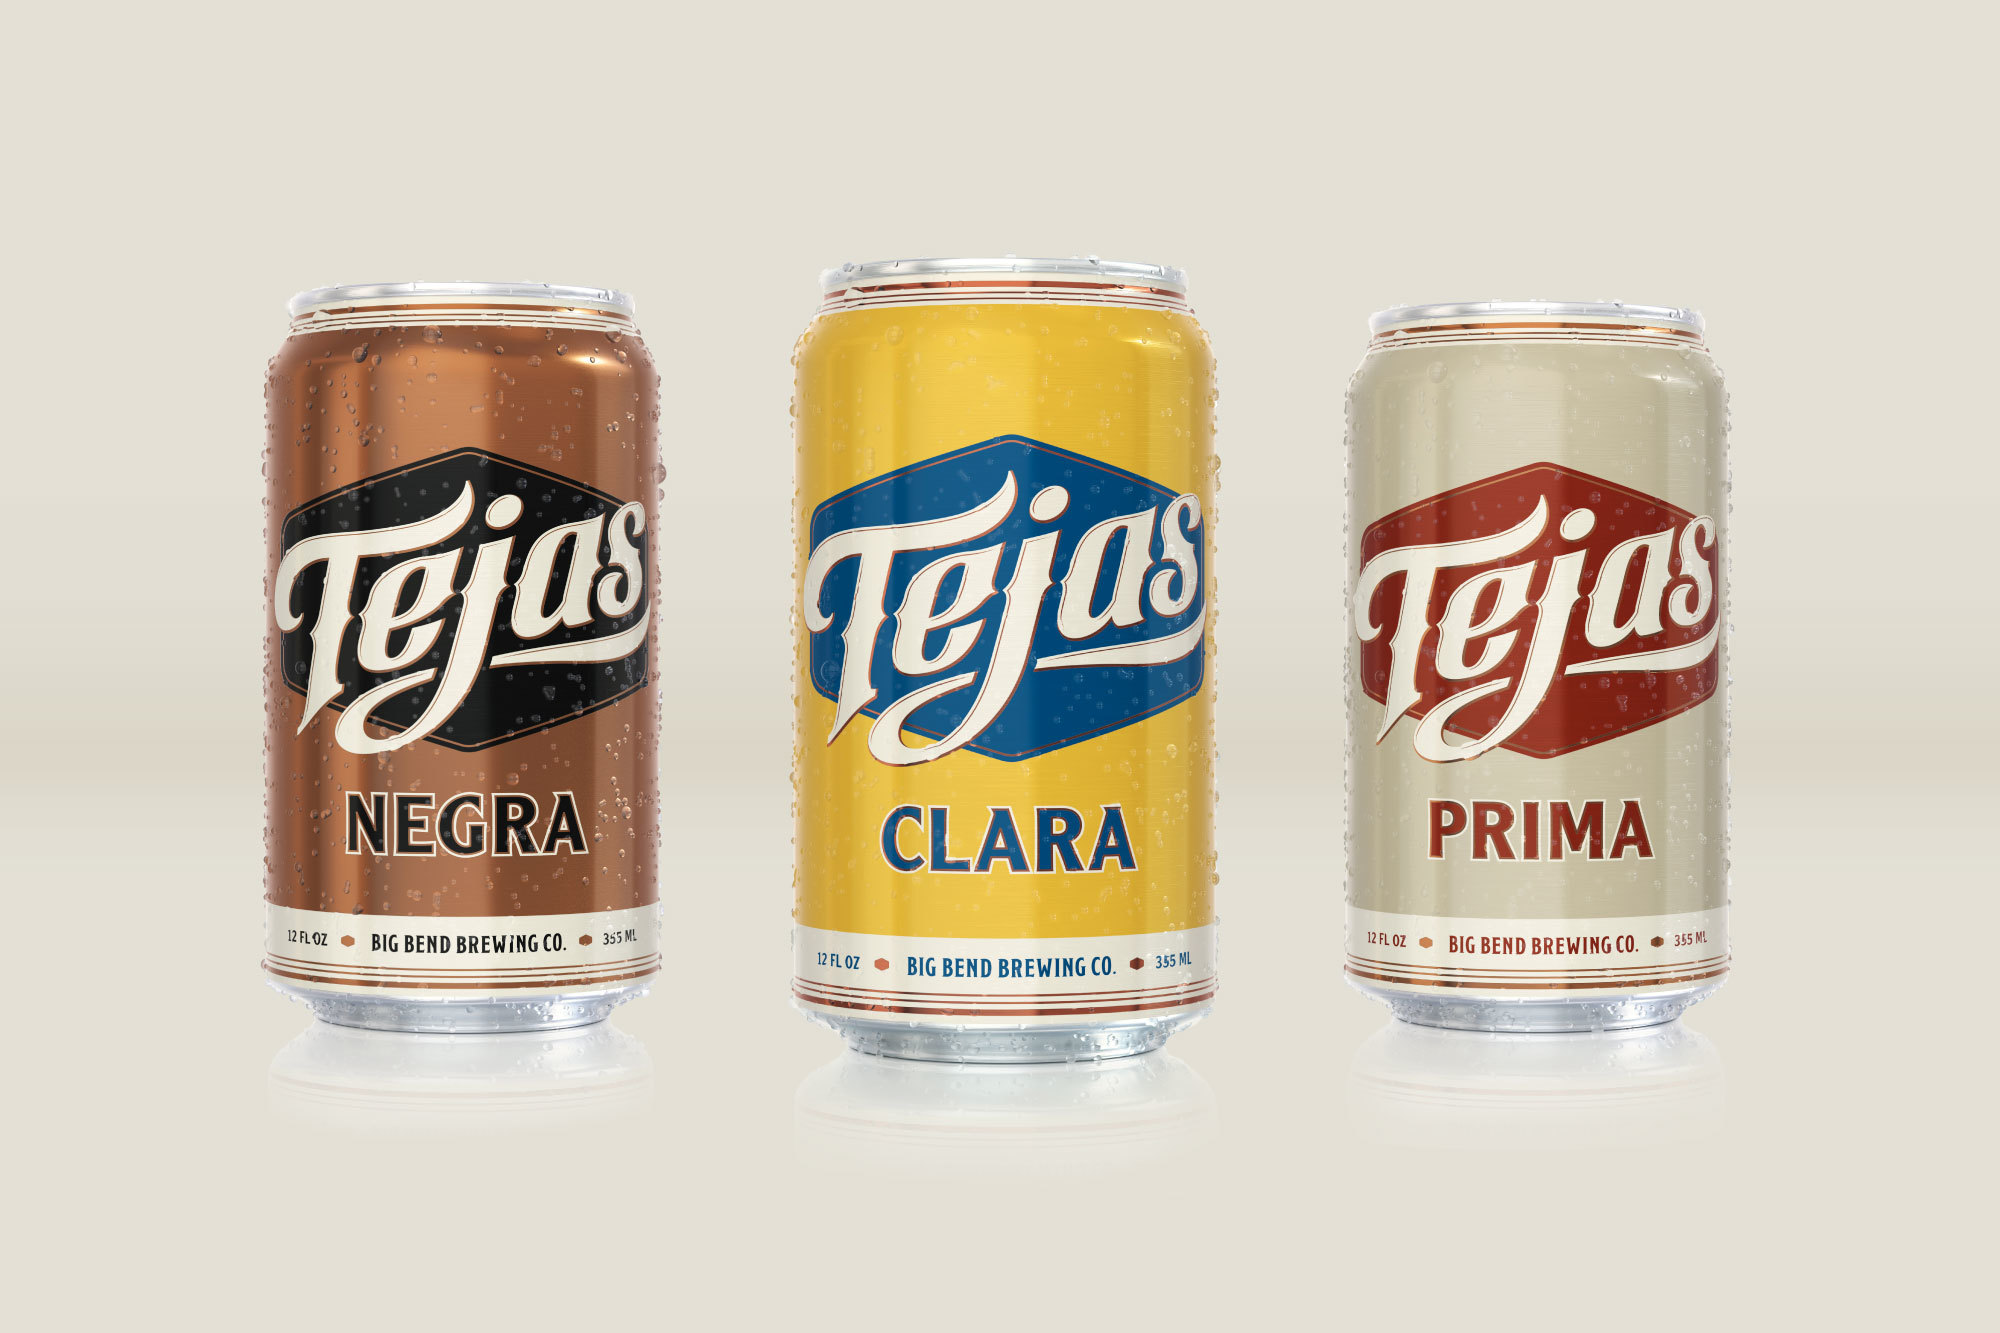 Bbbc Tejas Cans Lineup